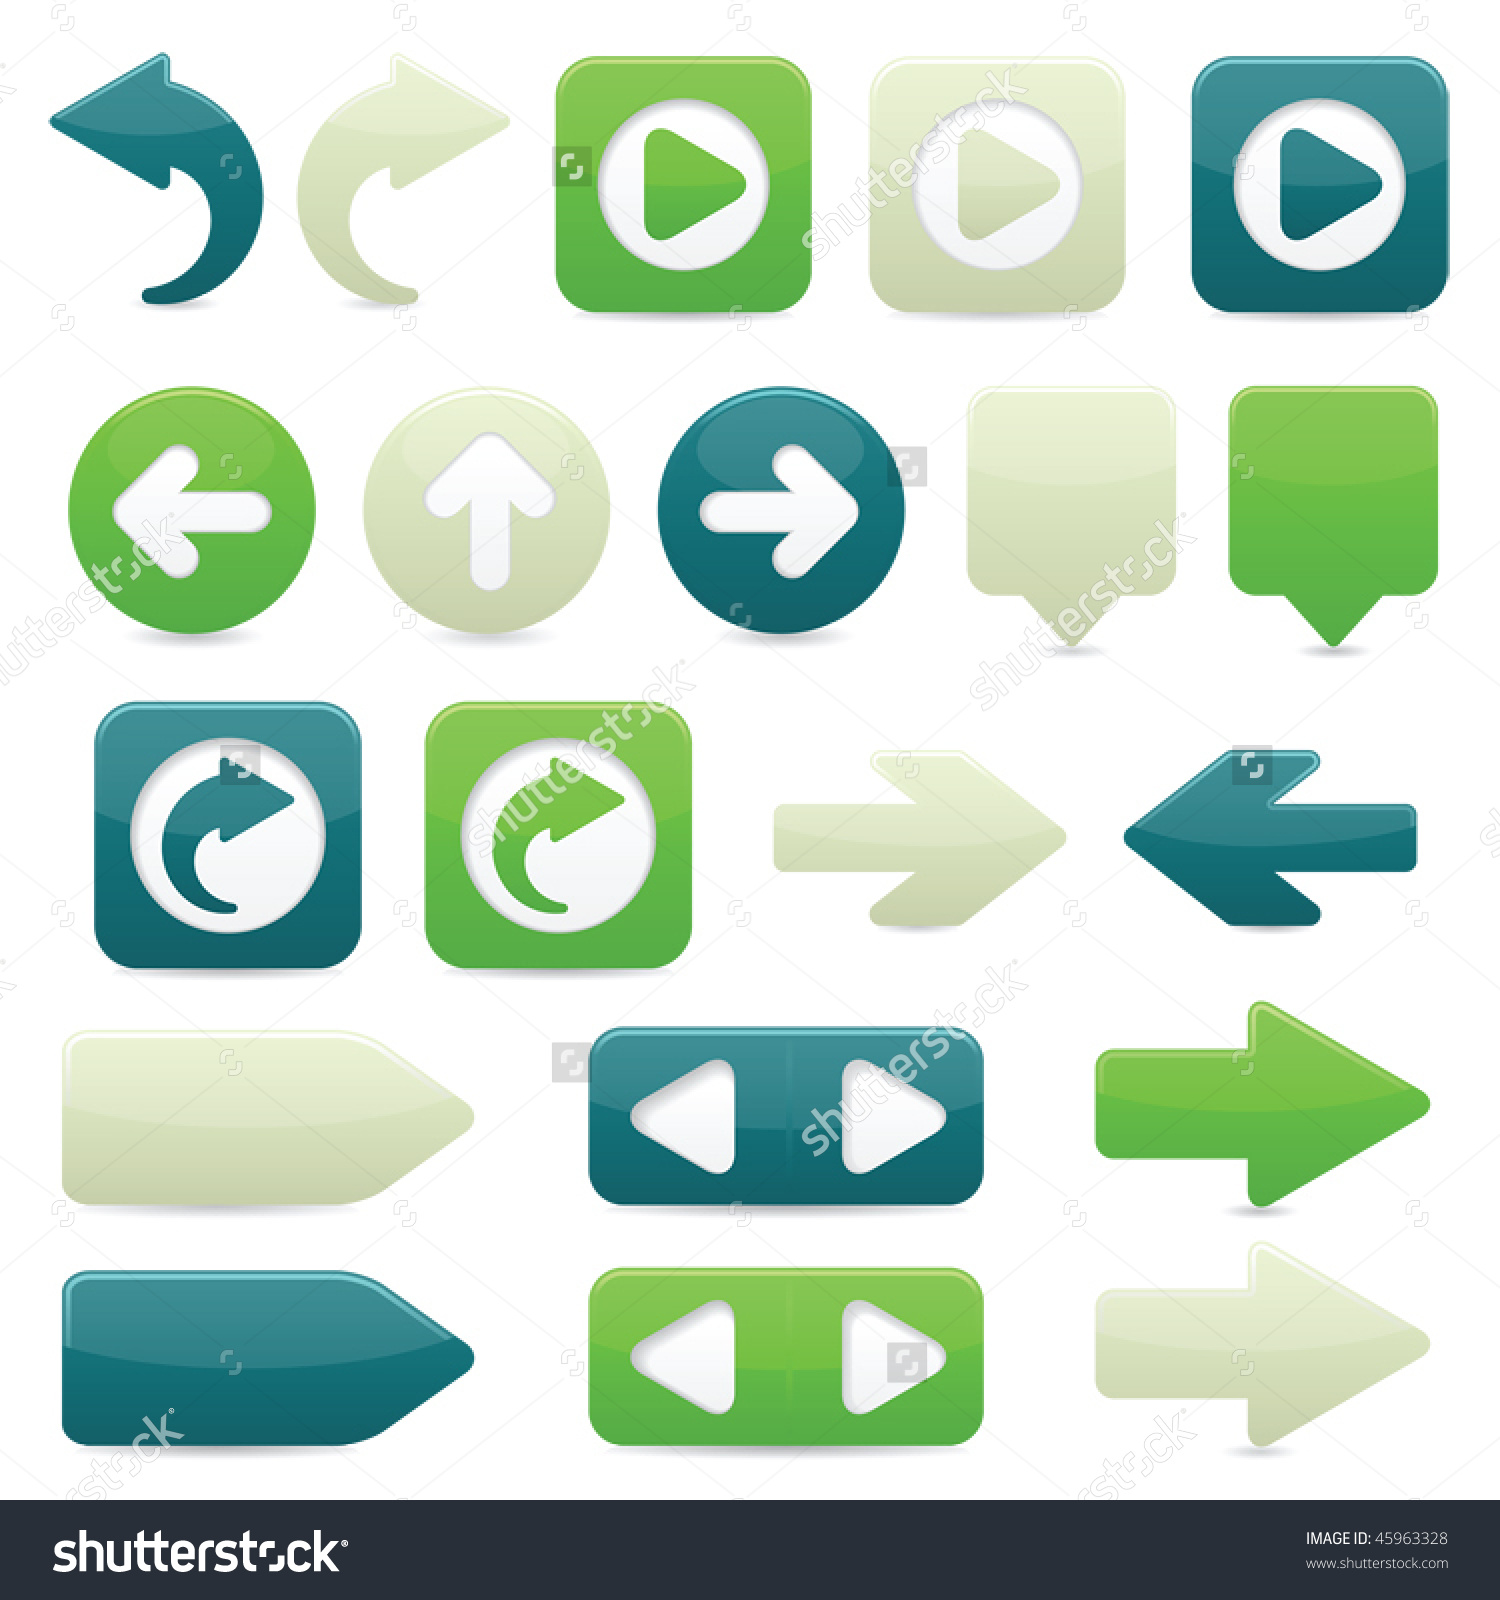 Glossy Directional Arrow Buttons In Bright Green, Dark Blue And.